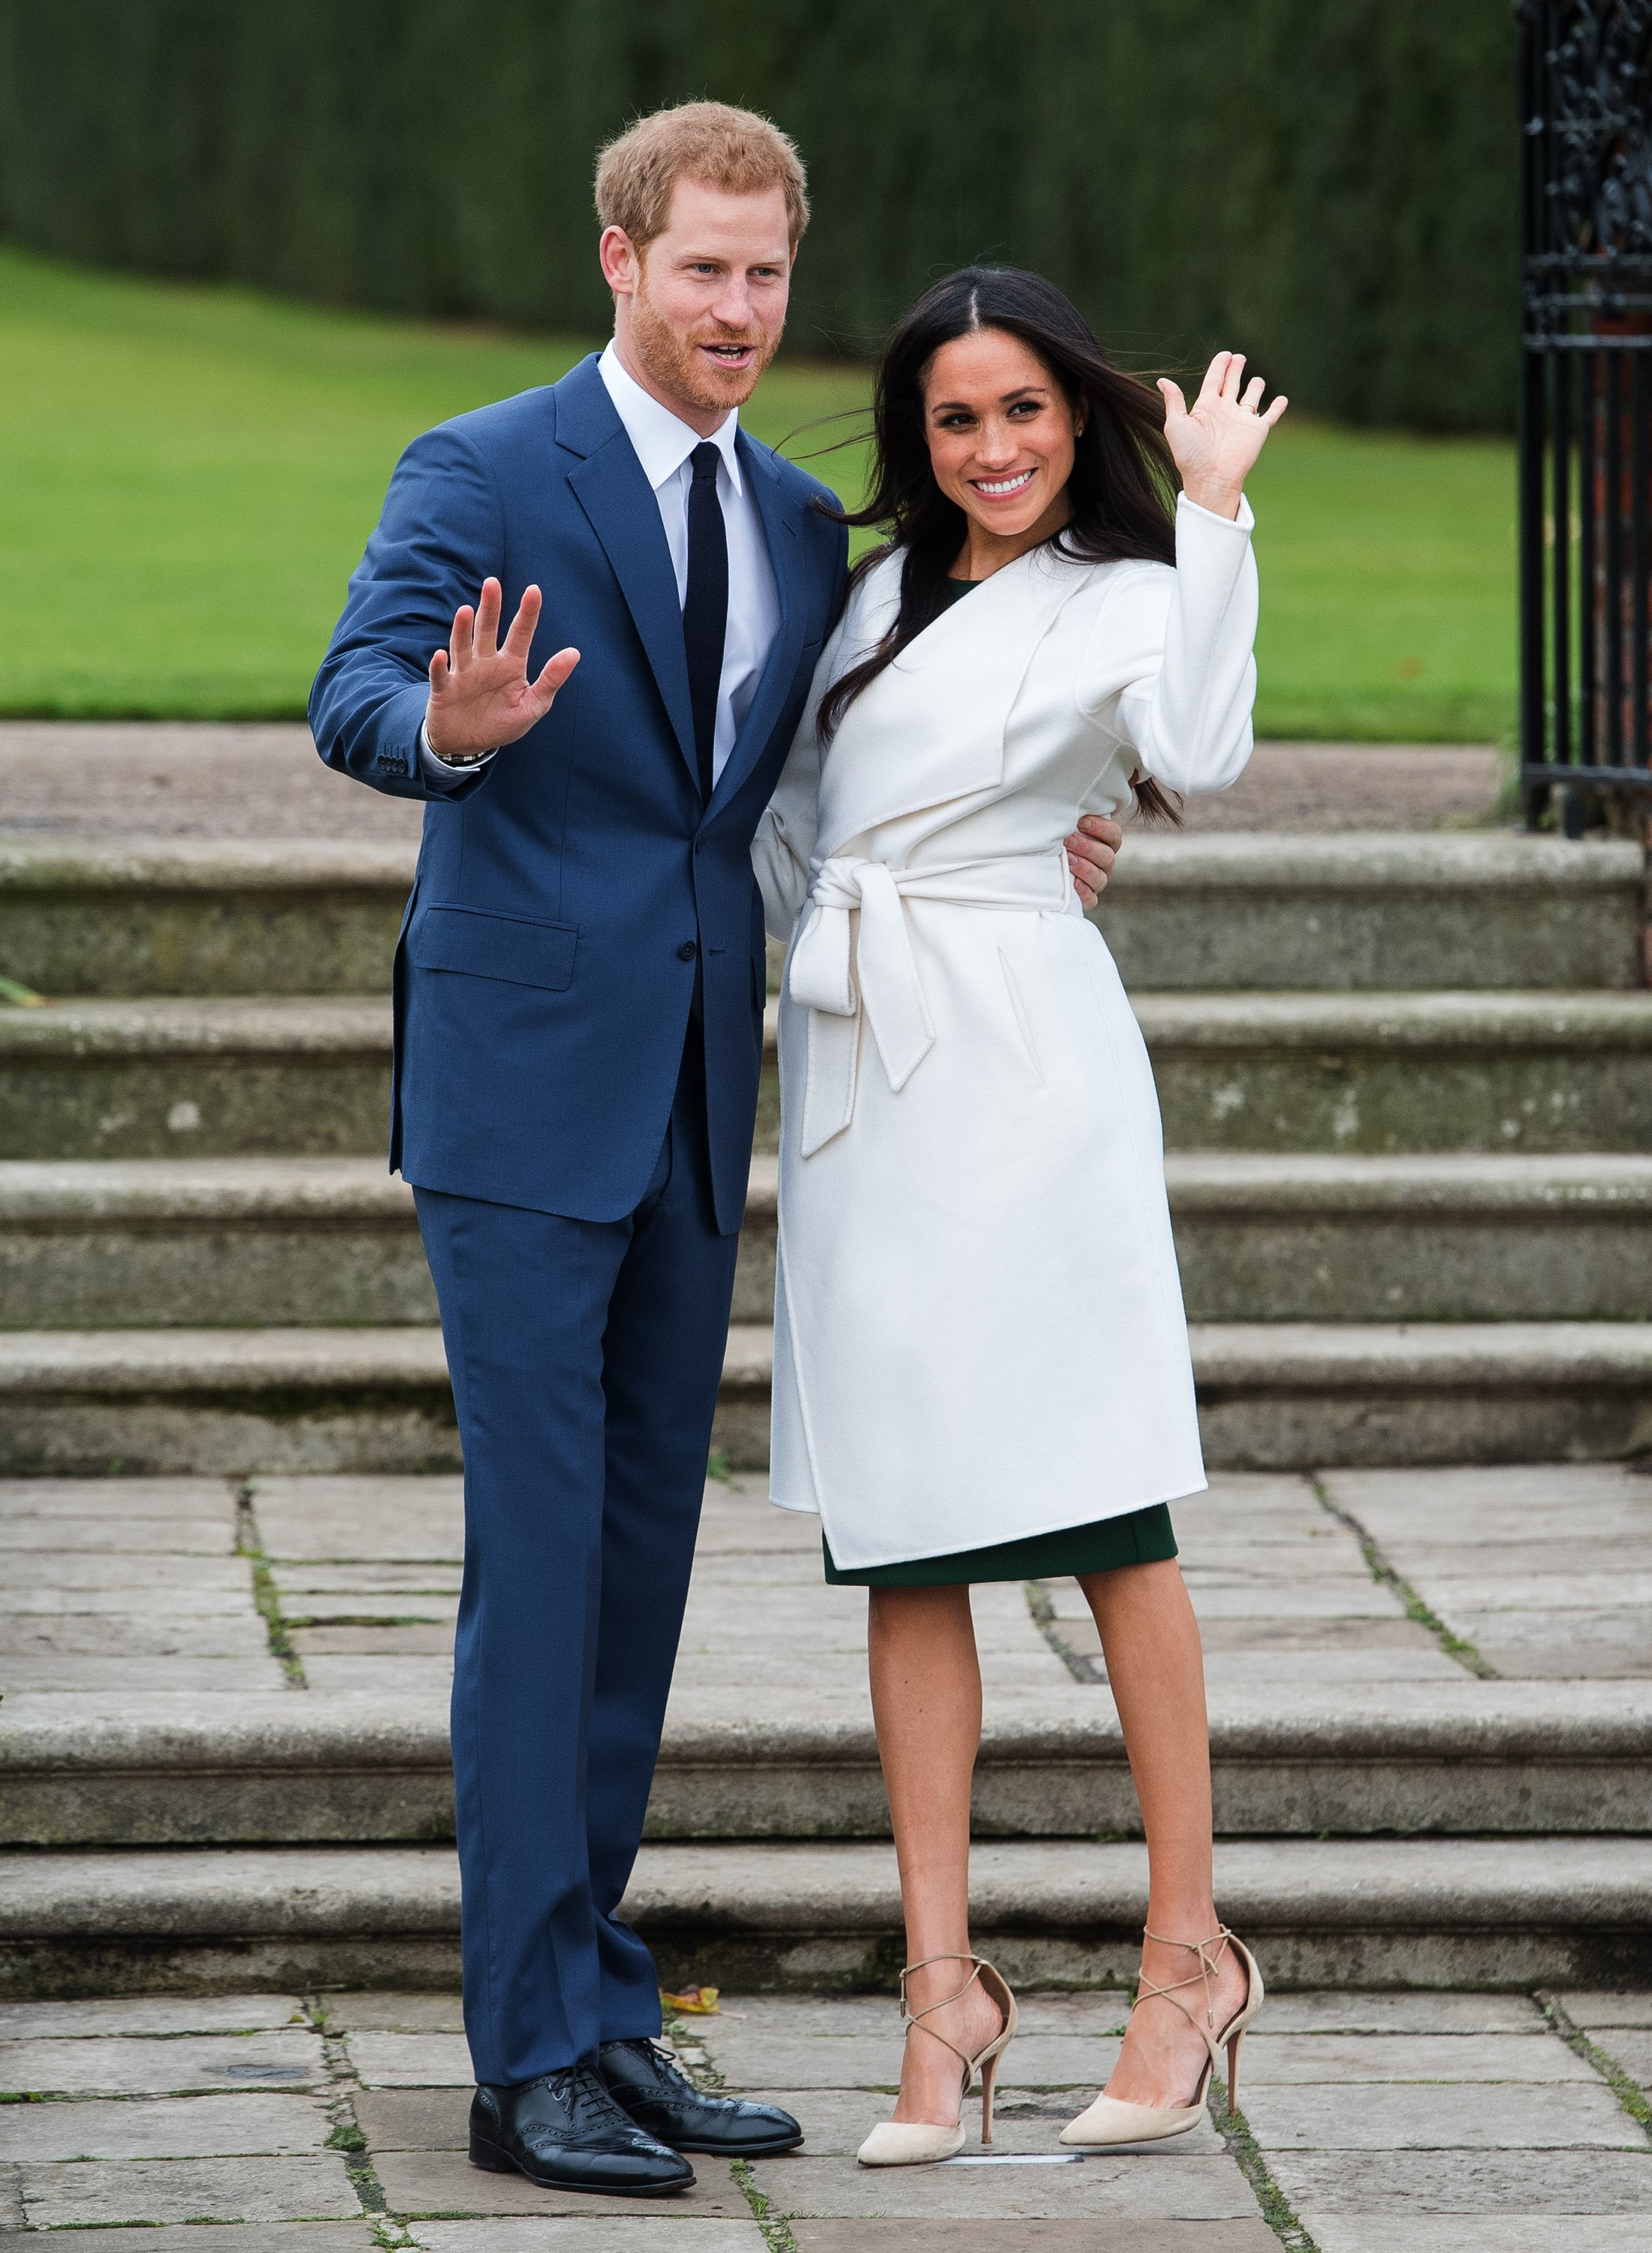 Prince Harry and Meghan Markle in the Sunken Garden at Kensington Palace, London, after the announcement of their engagement., Image: 356277552, License: Rights-managed, Restrictions: , Model Release: no, Credit line: Profimedia, Press Association